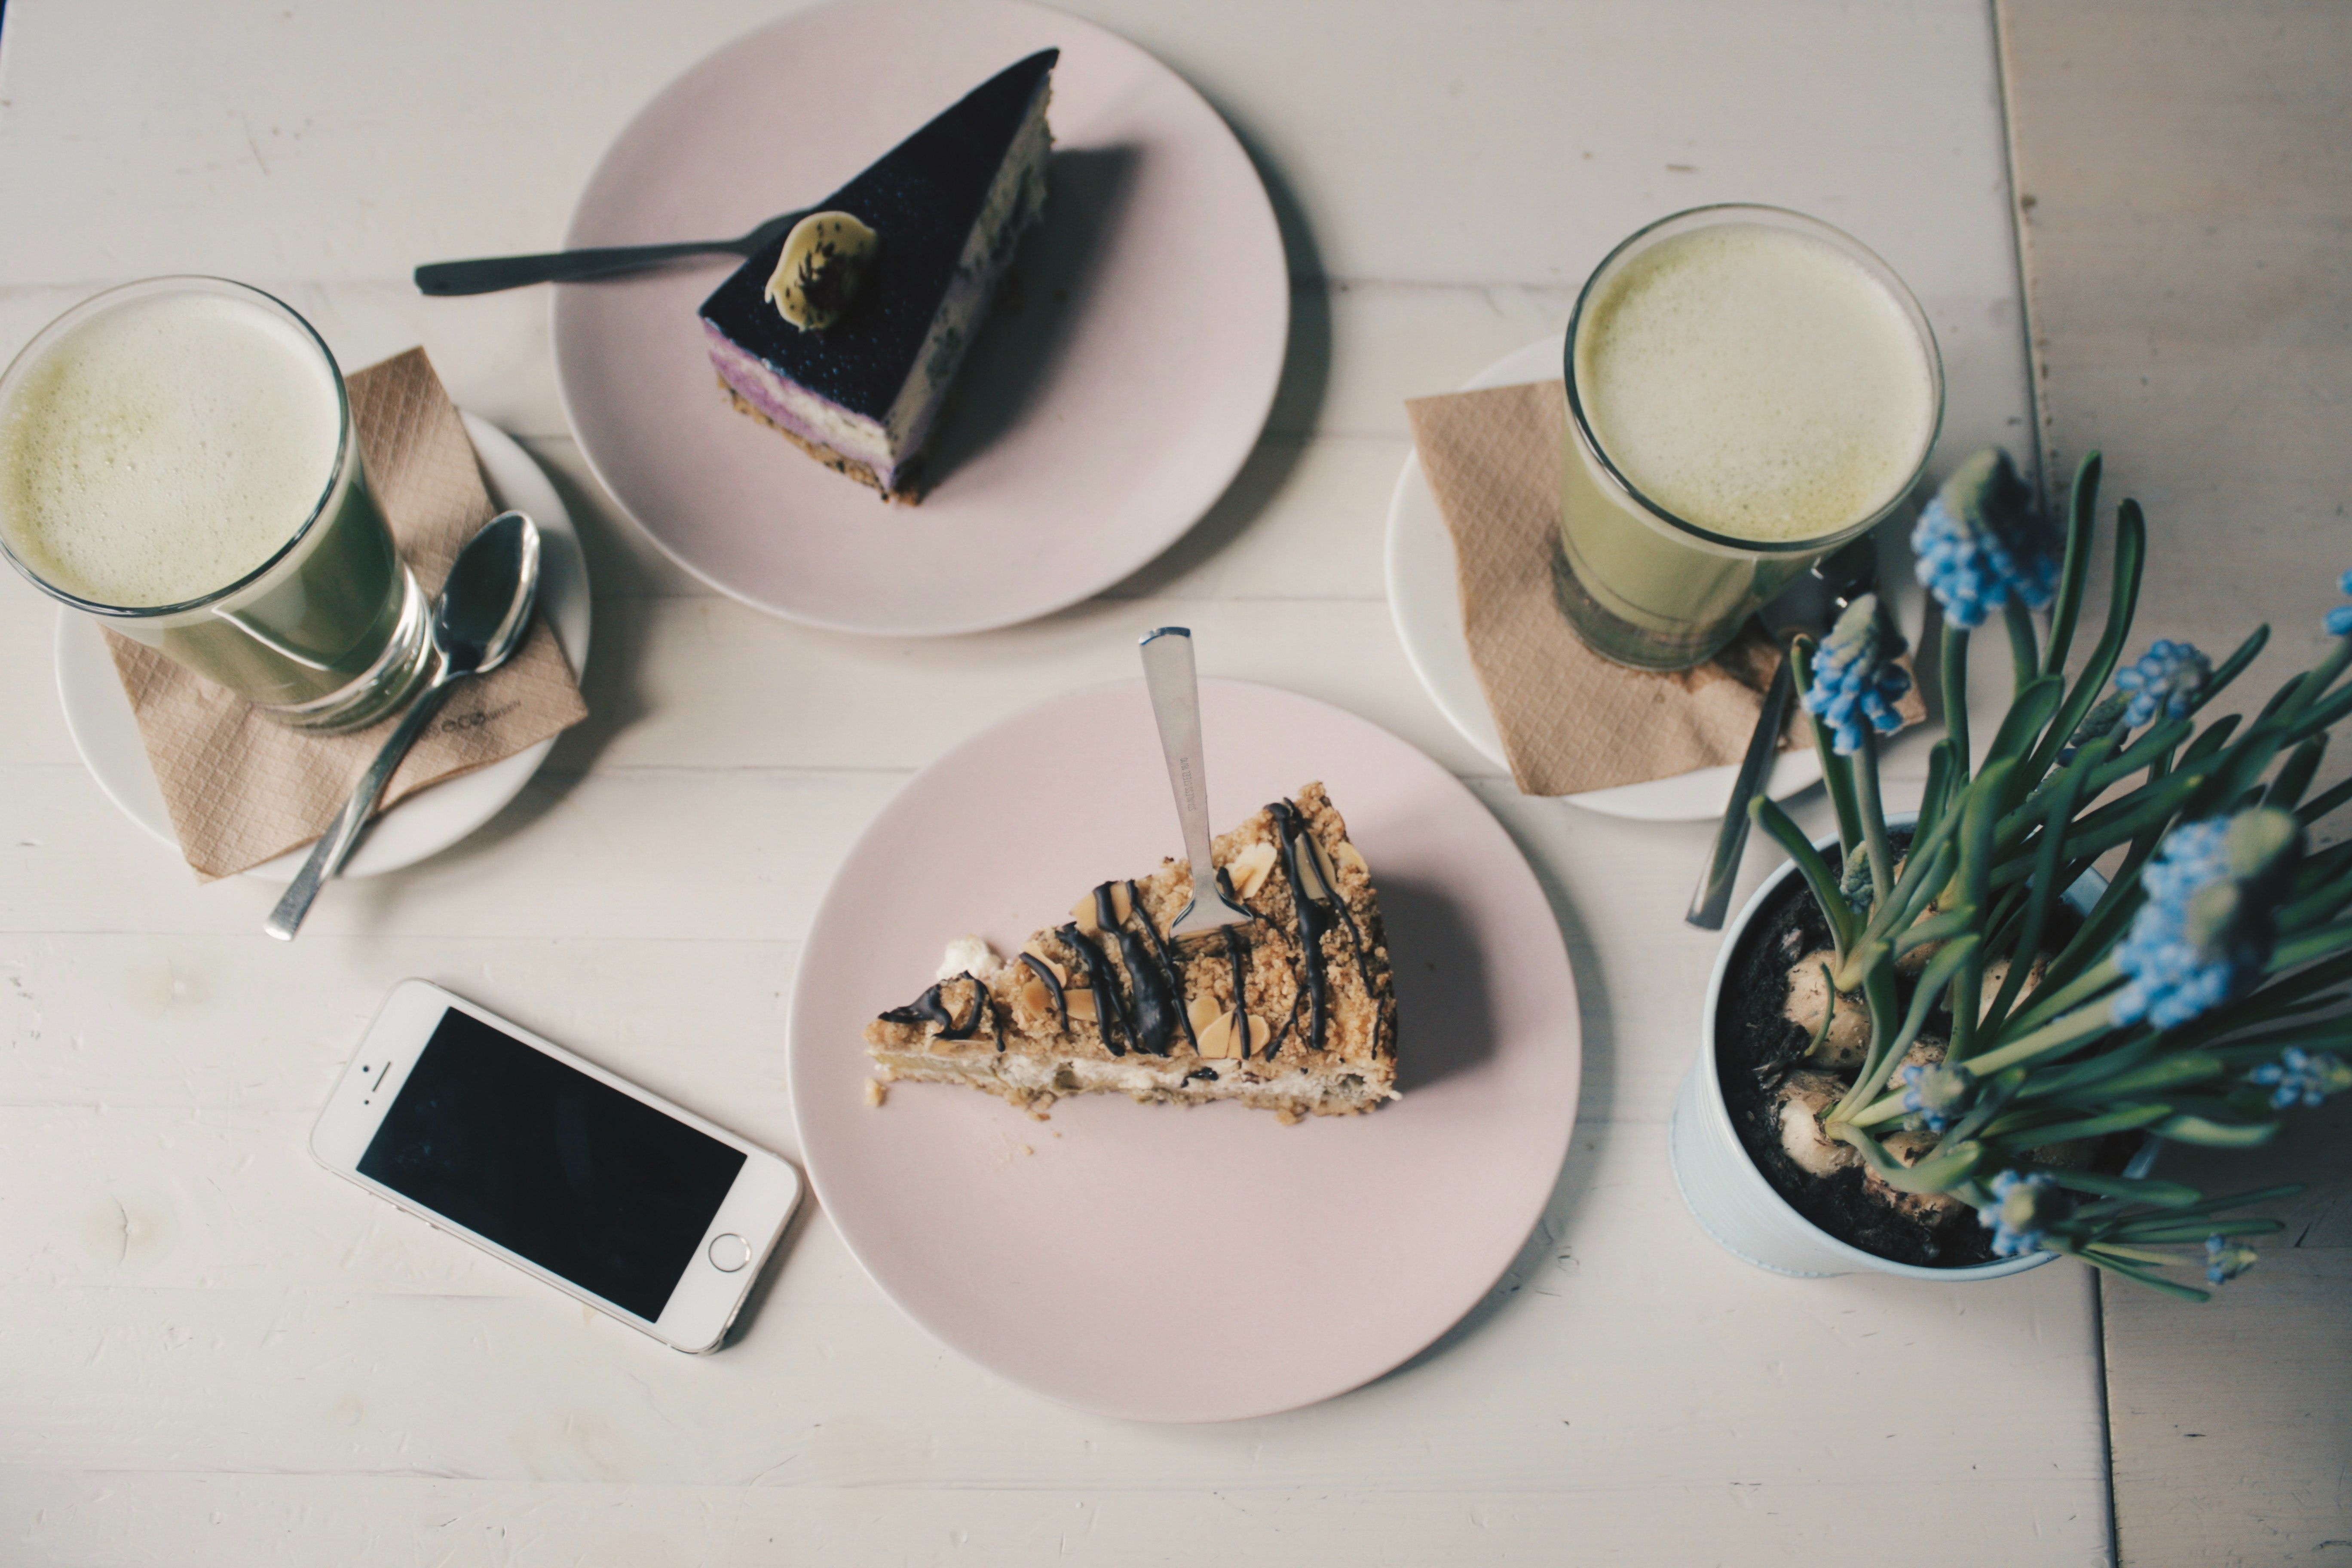 The B E S T desserts close to home... because who wants to